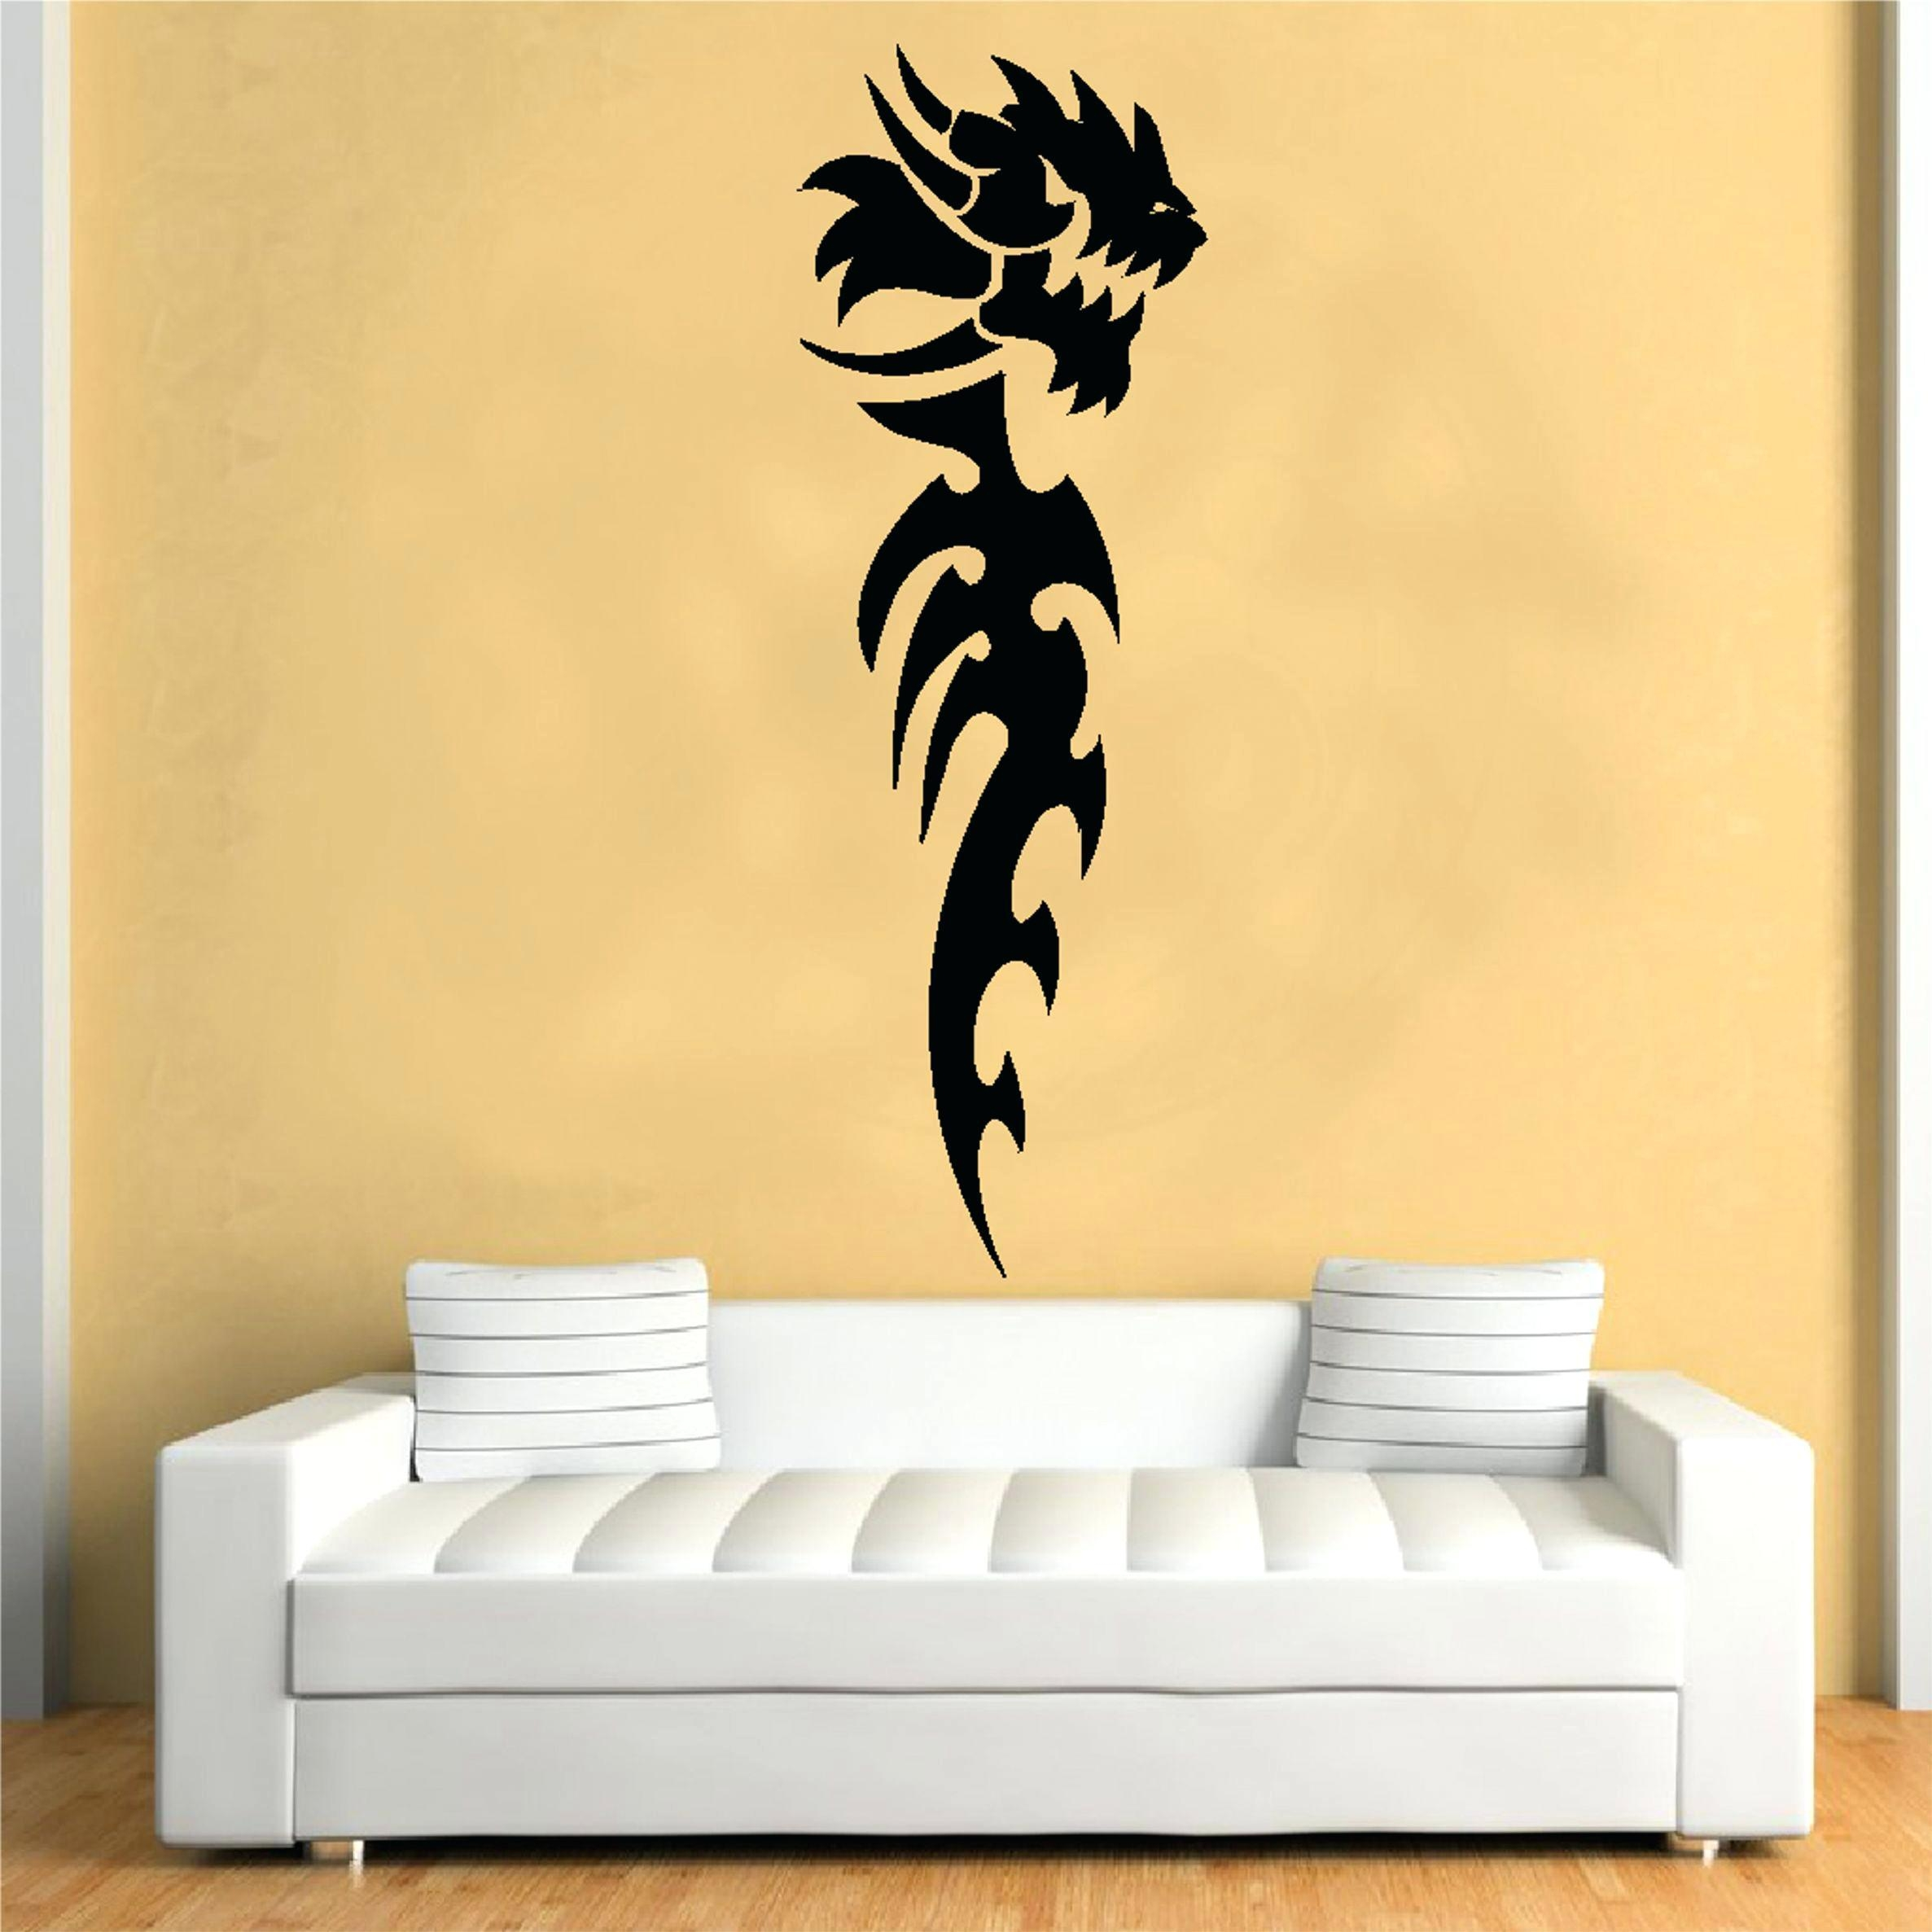 Stencil Wall Art | Wall Plate Design Ideas